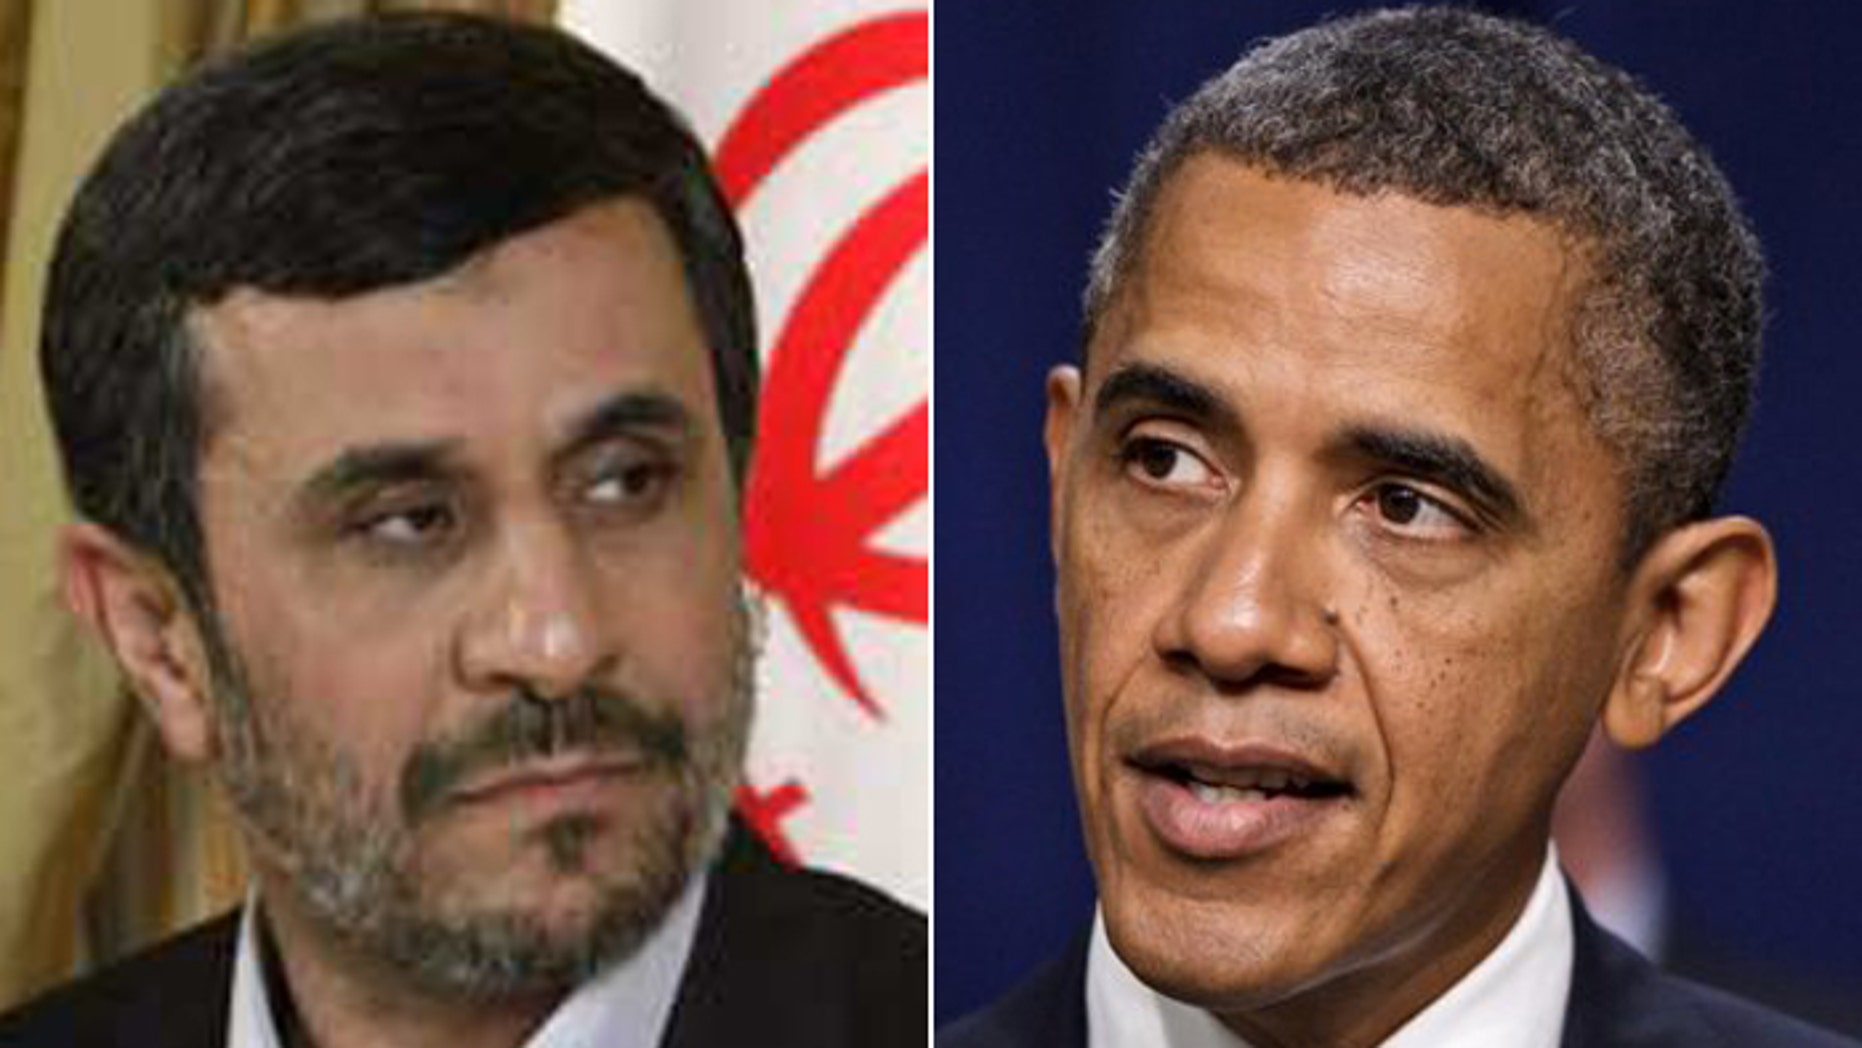 Iran's rogue regime tells Obama administration not to expect